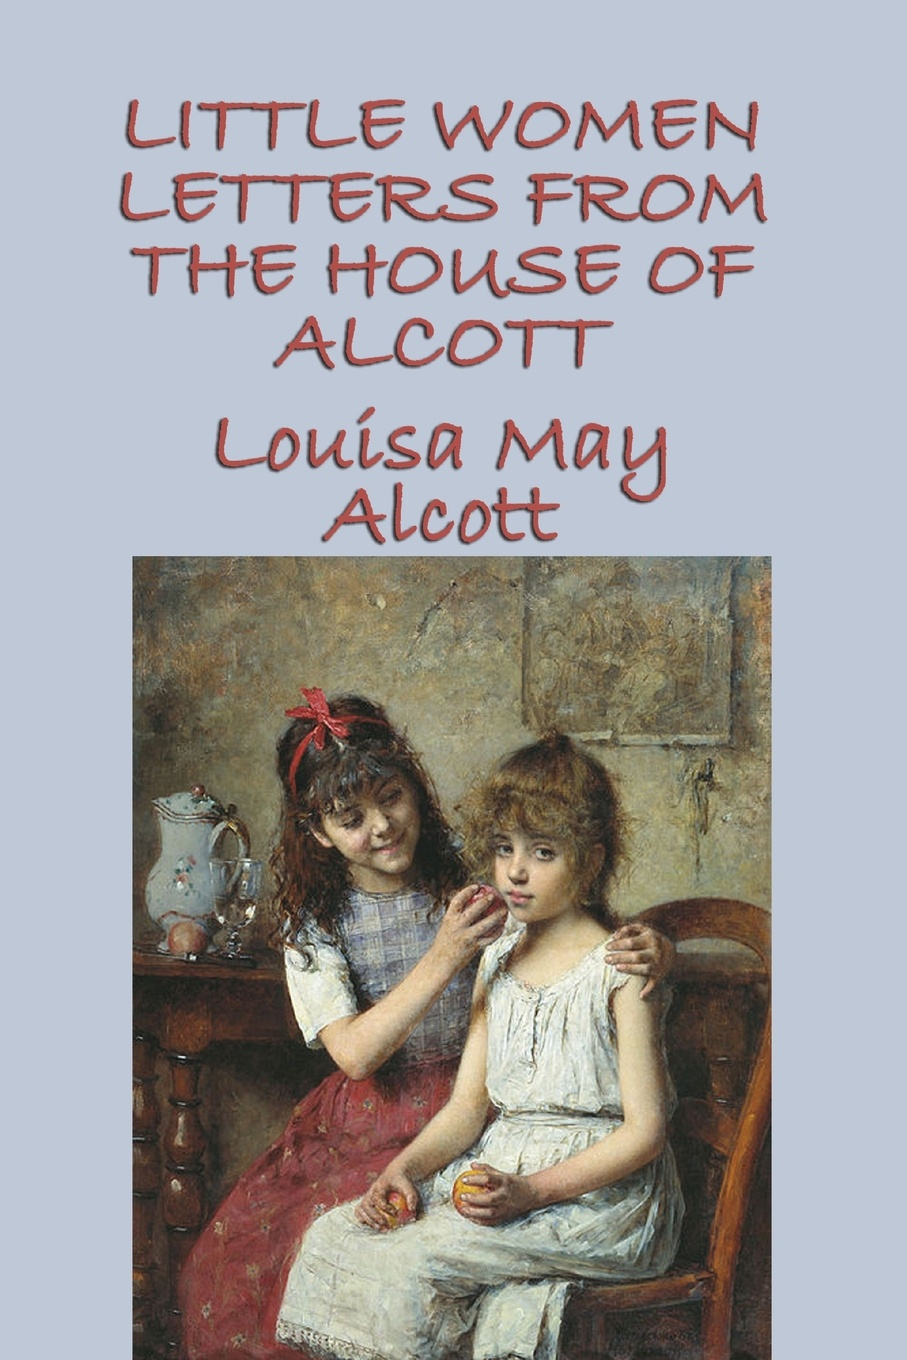 Louisa May Alcott Little Women Letters from the House of Alcott may alcott louisa may alcott alcott louisa may jack and jill louisa may alcott